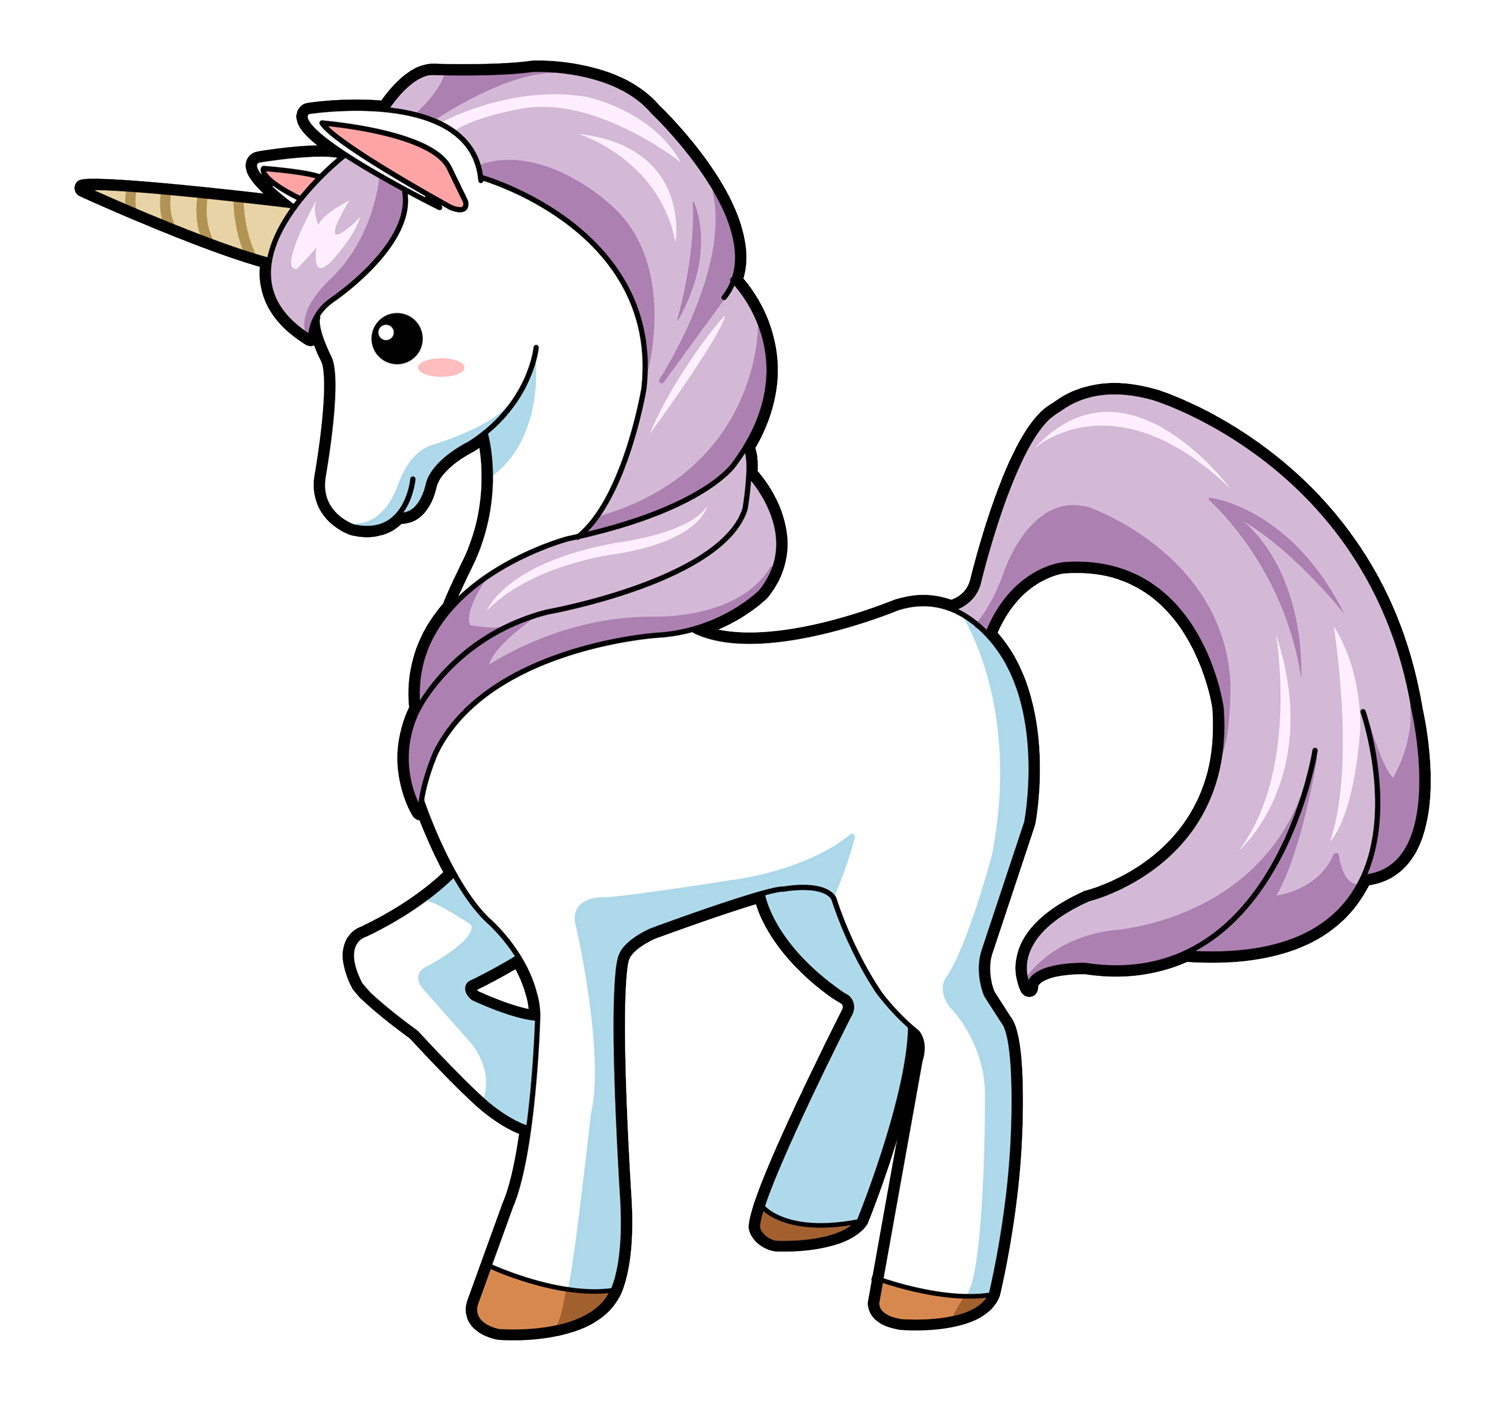 You Can Use This Lovely Cartoon Unicorn -You can use this lovely cartoon unicorn clip art on your personal or commercial projects. Add life to your fantasy projects, storybook illustrations, ...-19